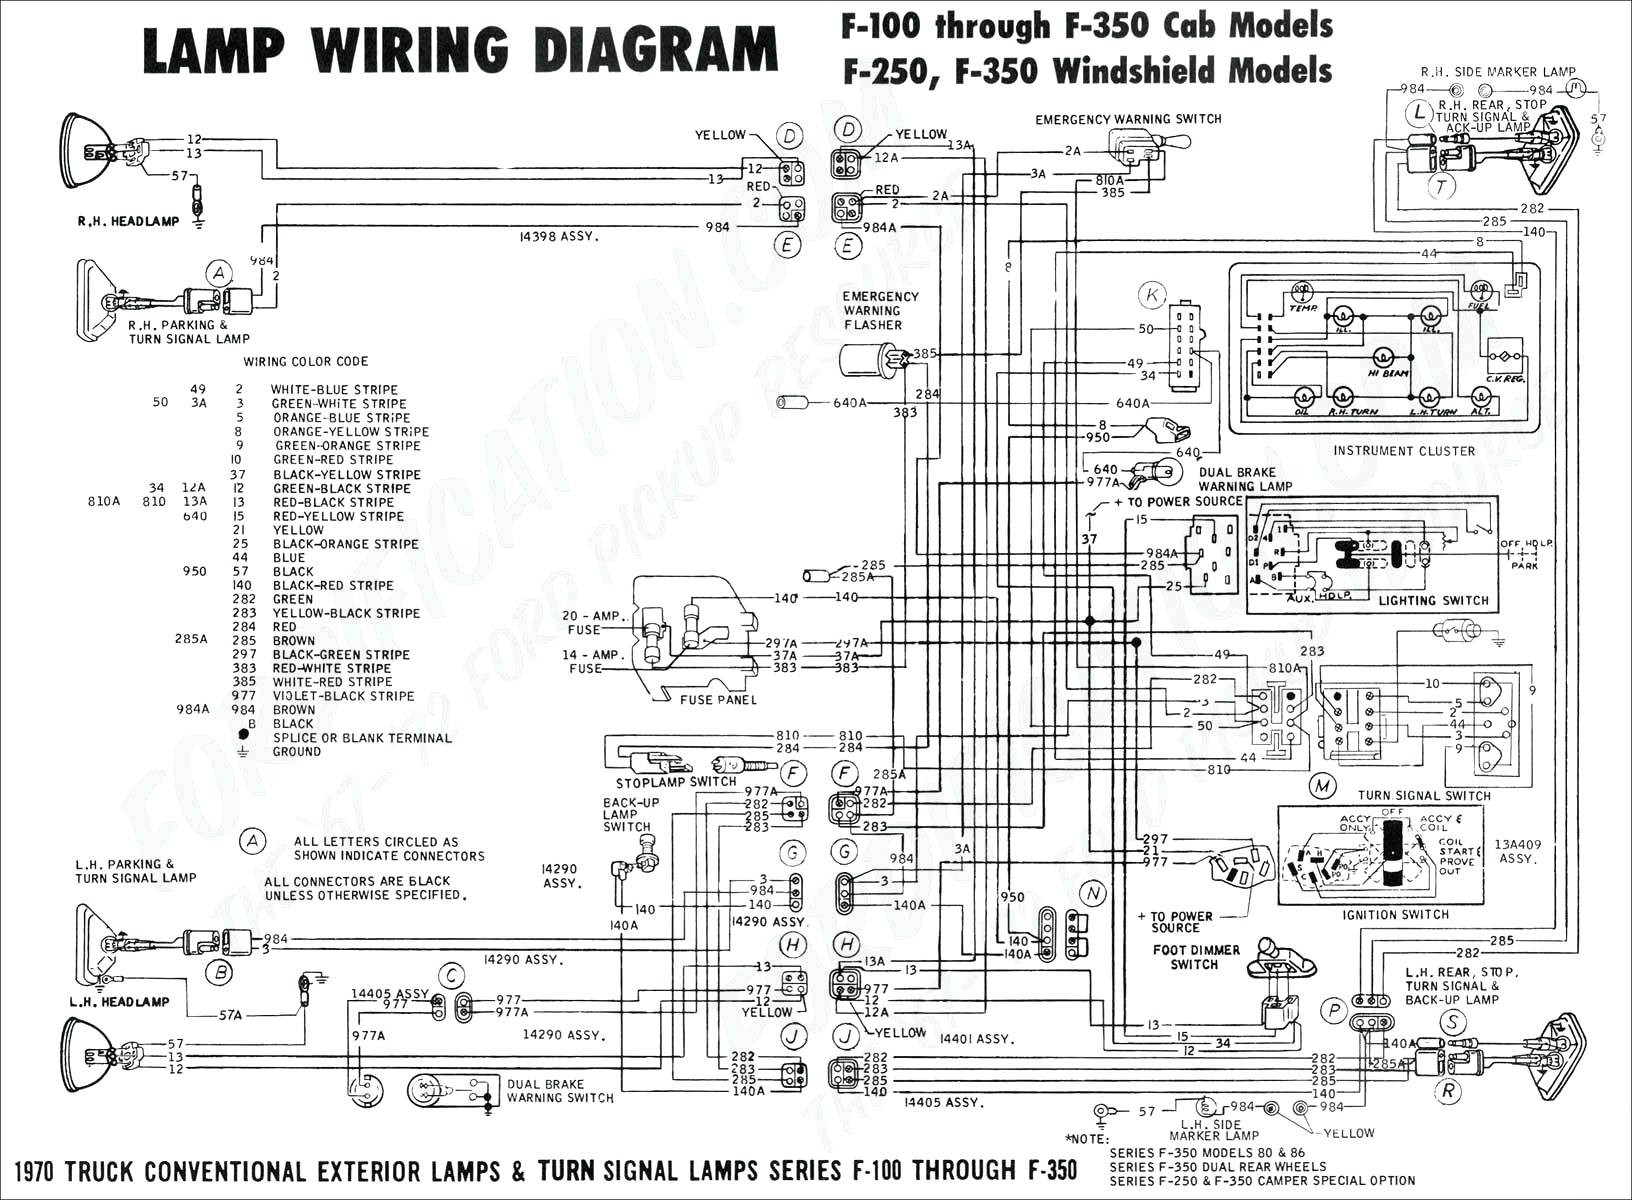 1999 ford f53 vacuum line diagram enthusiast wiring diagrams u2022 rh  rasalibre co 1990 Ford Box Truck Schematics Ford E 350 Wiring Diagrams